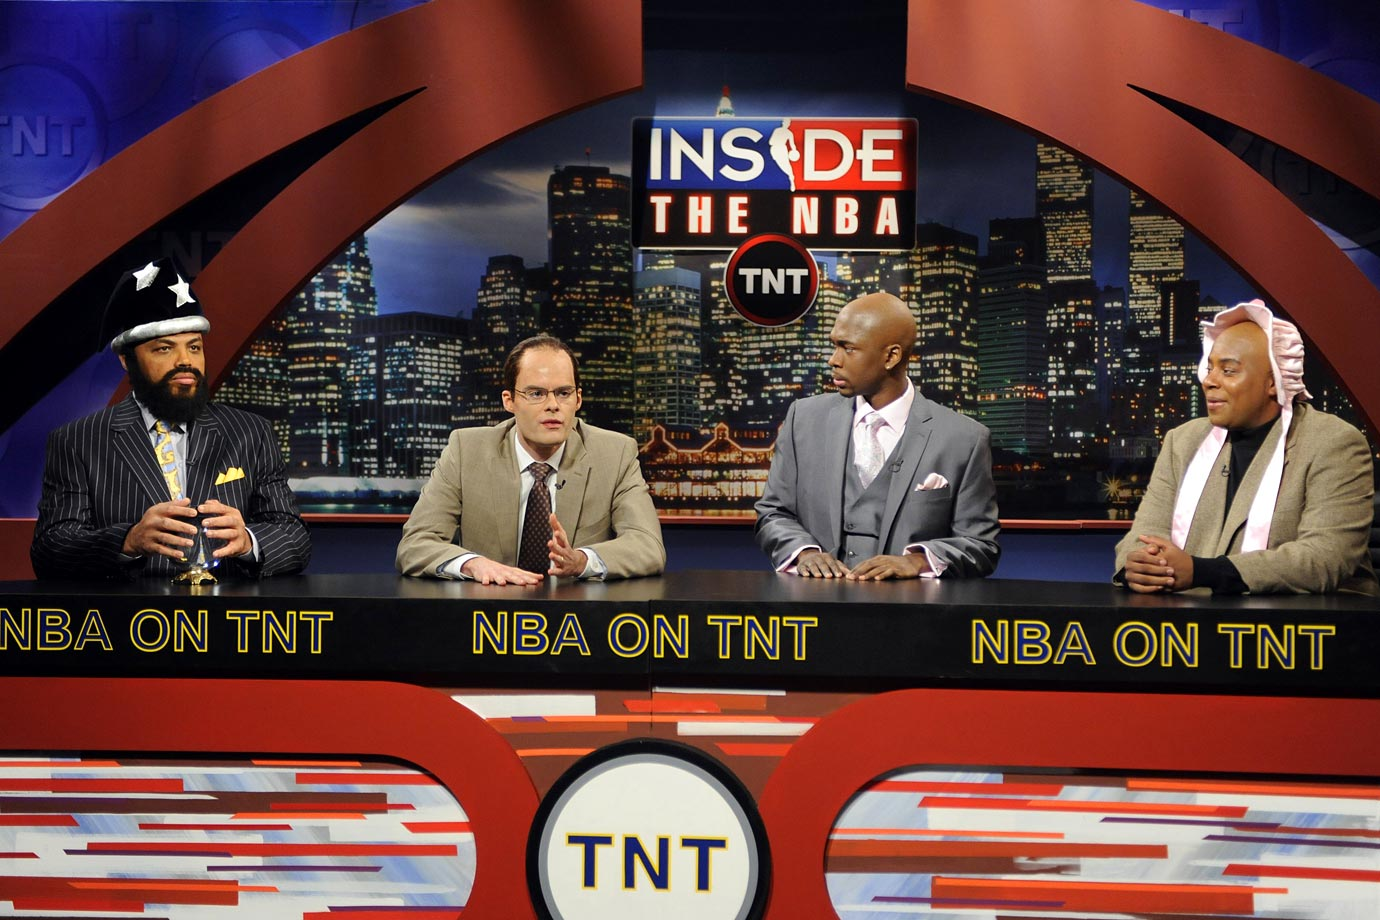 "Charles Barkley appears in a sketch on Saturday Night Live, spoofing ""Inside the NBA,"" the basketball analysis show on which he regularly appears. Rather than play himself in the sketch, Barkley played the role of Shaquille O'Neal, complete with a fake beard while Kenan Thompson filled in the role of the sketch's Barkley."